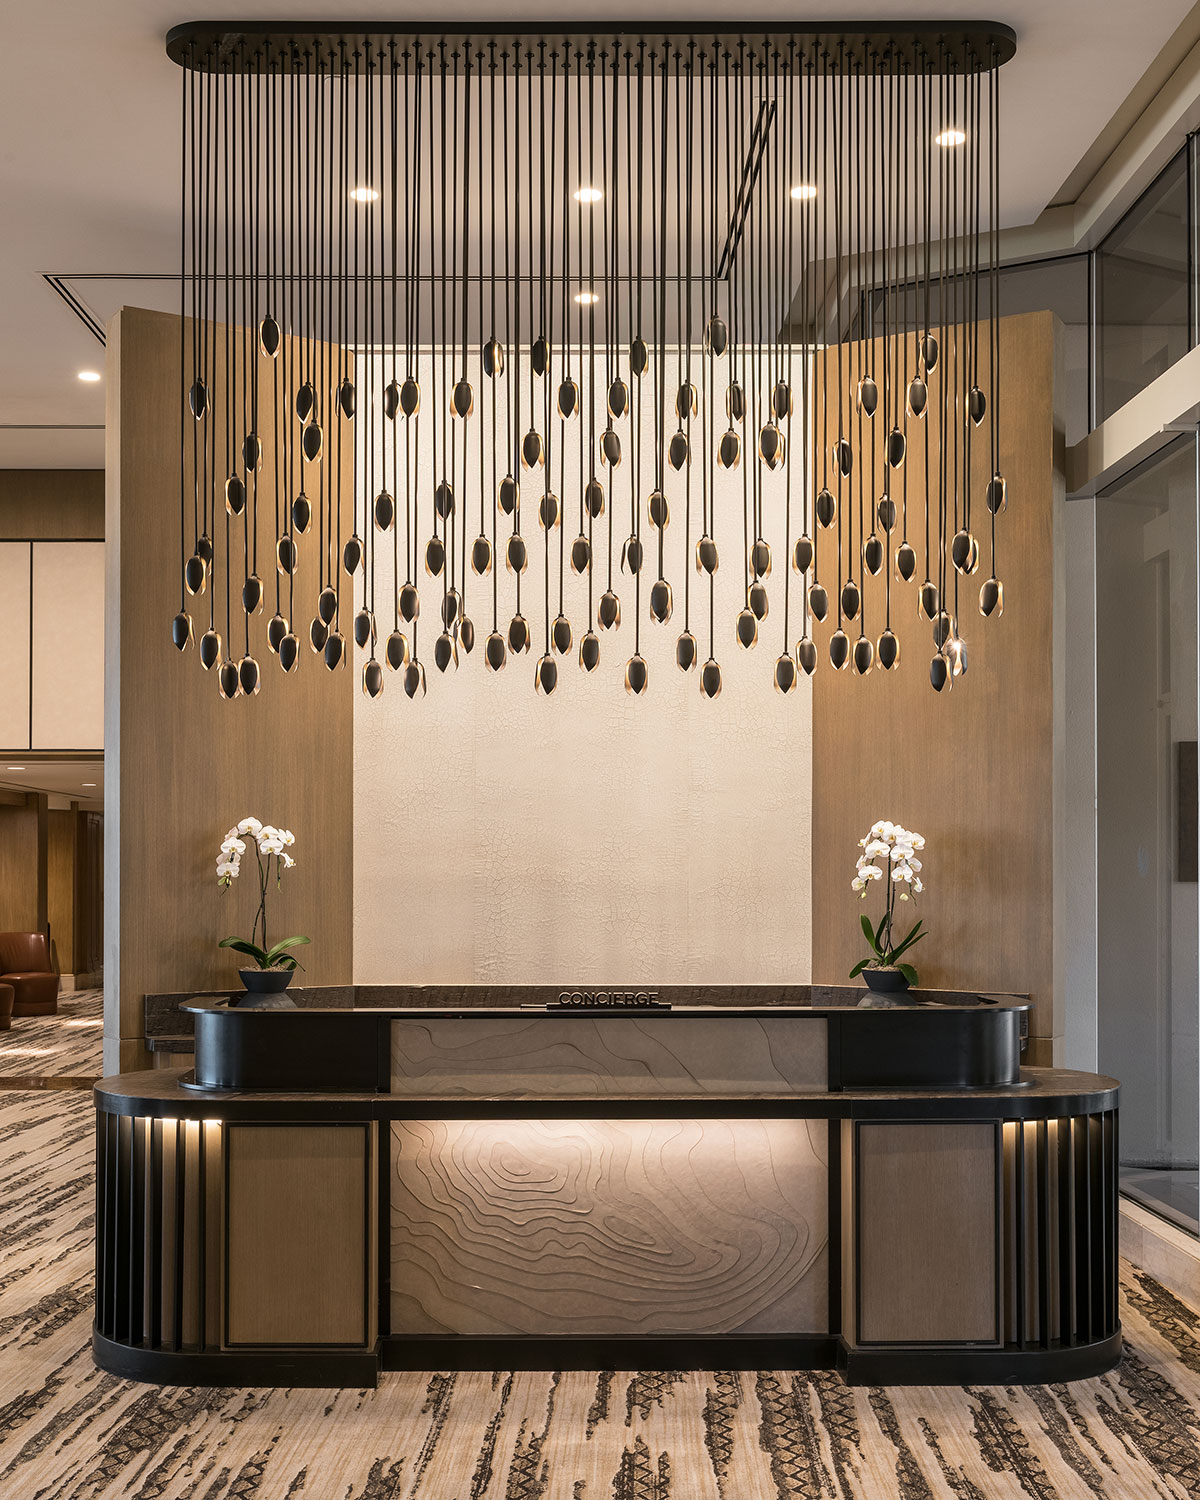 The chandelier over the concierge desk was inspired by the seed pods of the agave plant.